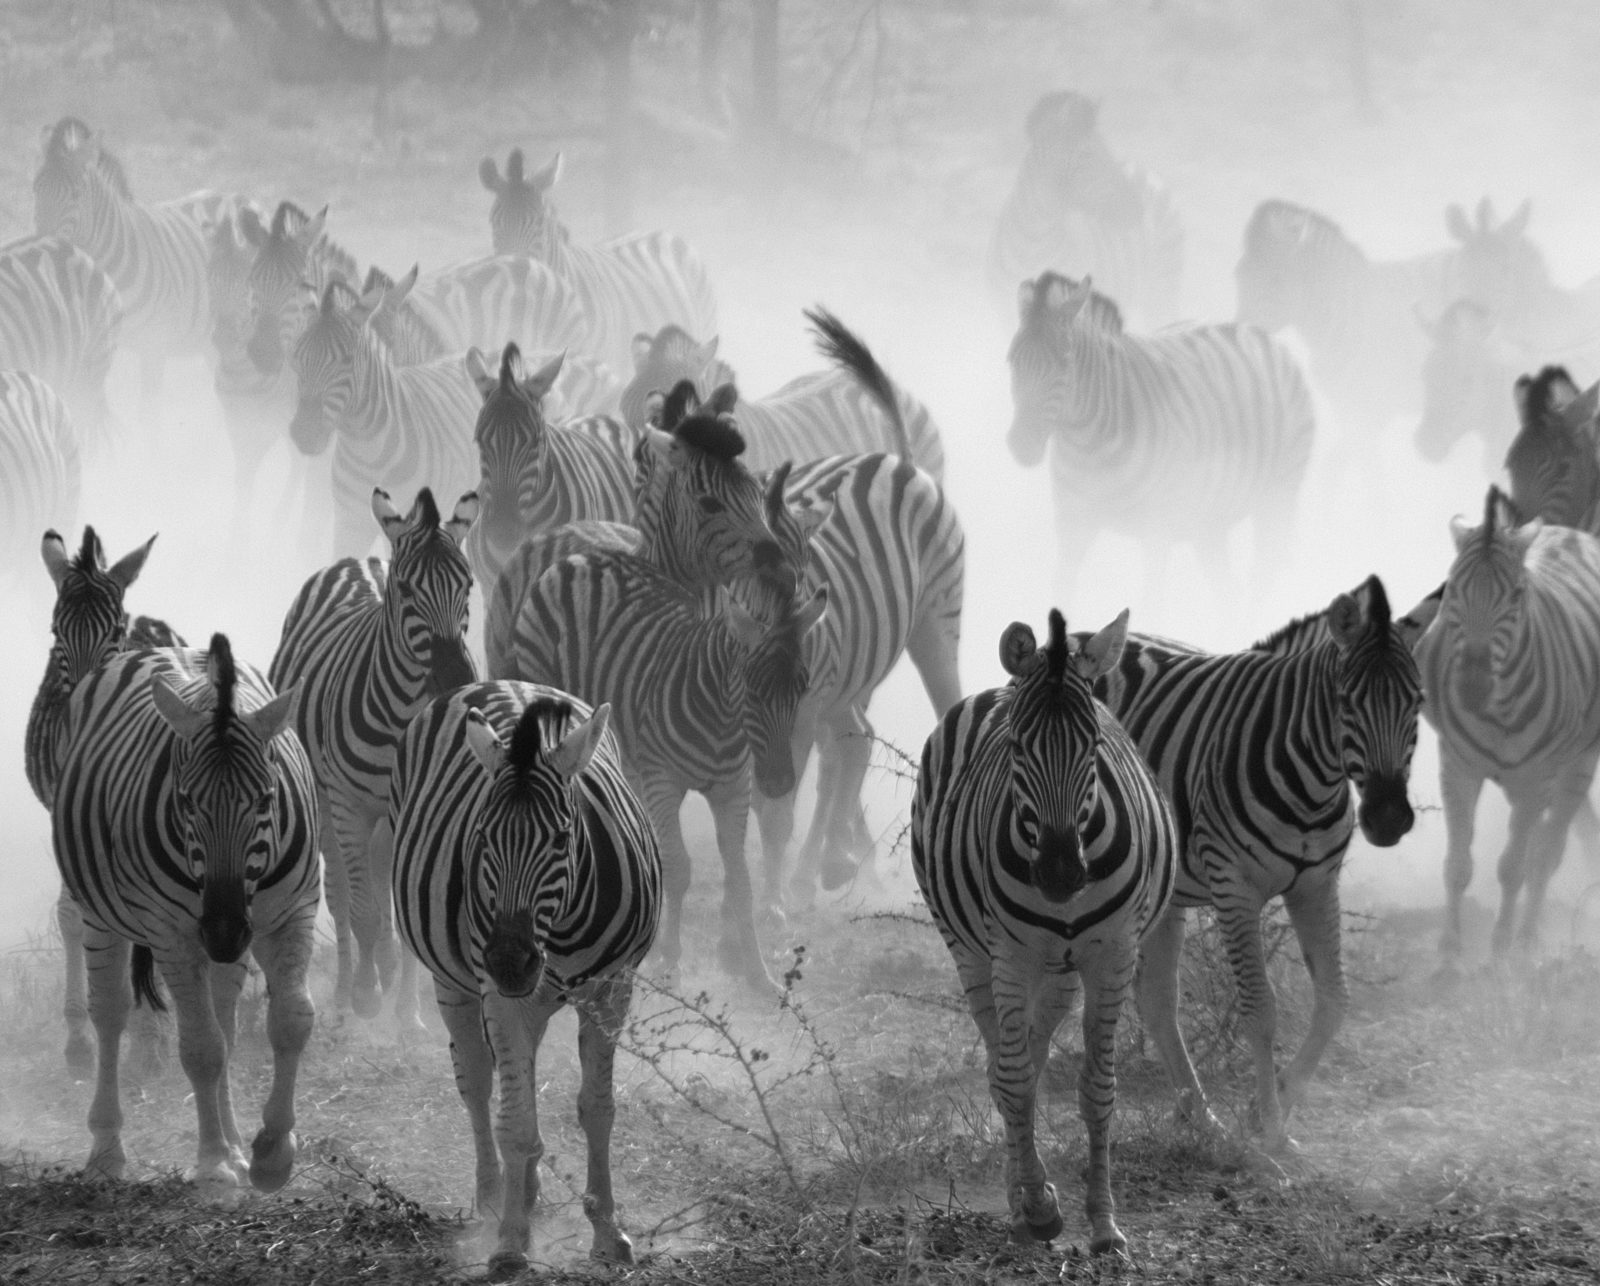 Fleeing Zebras